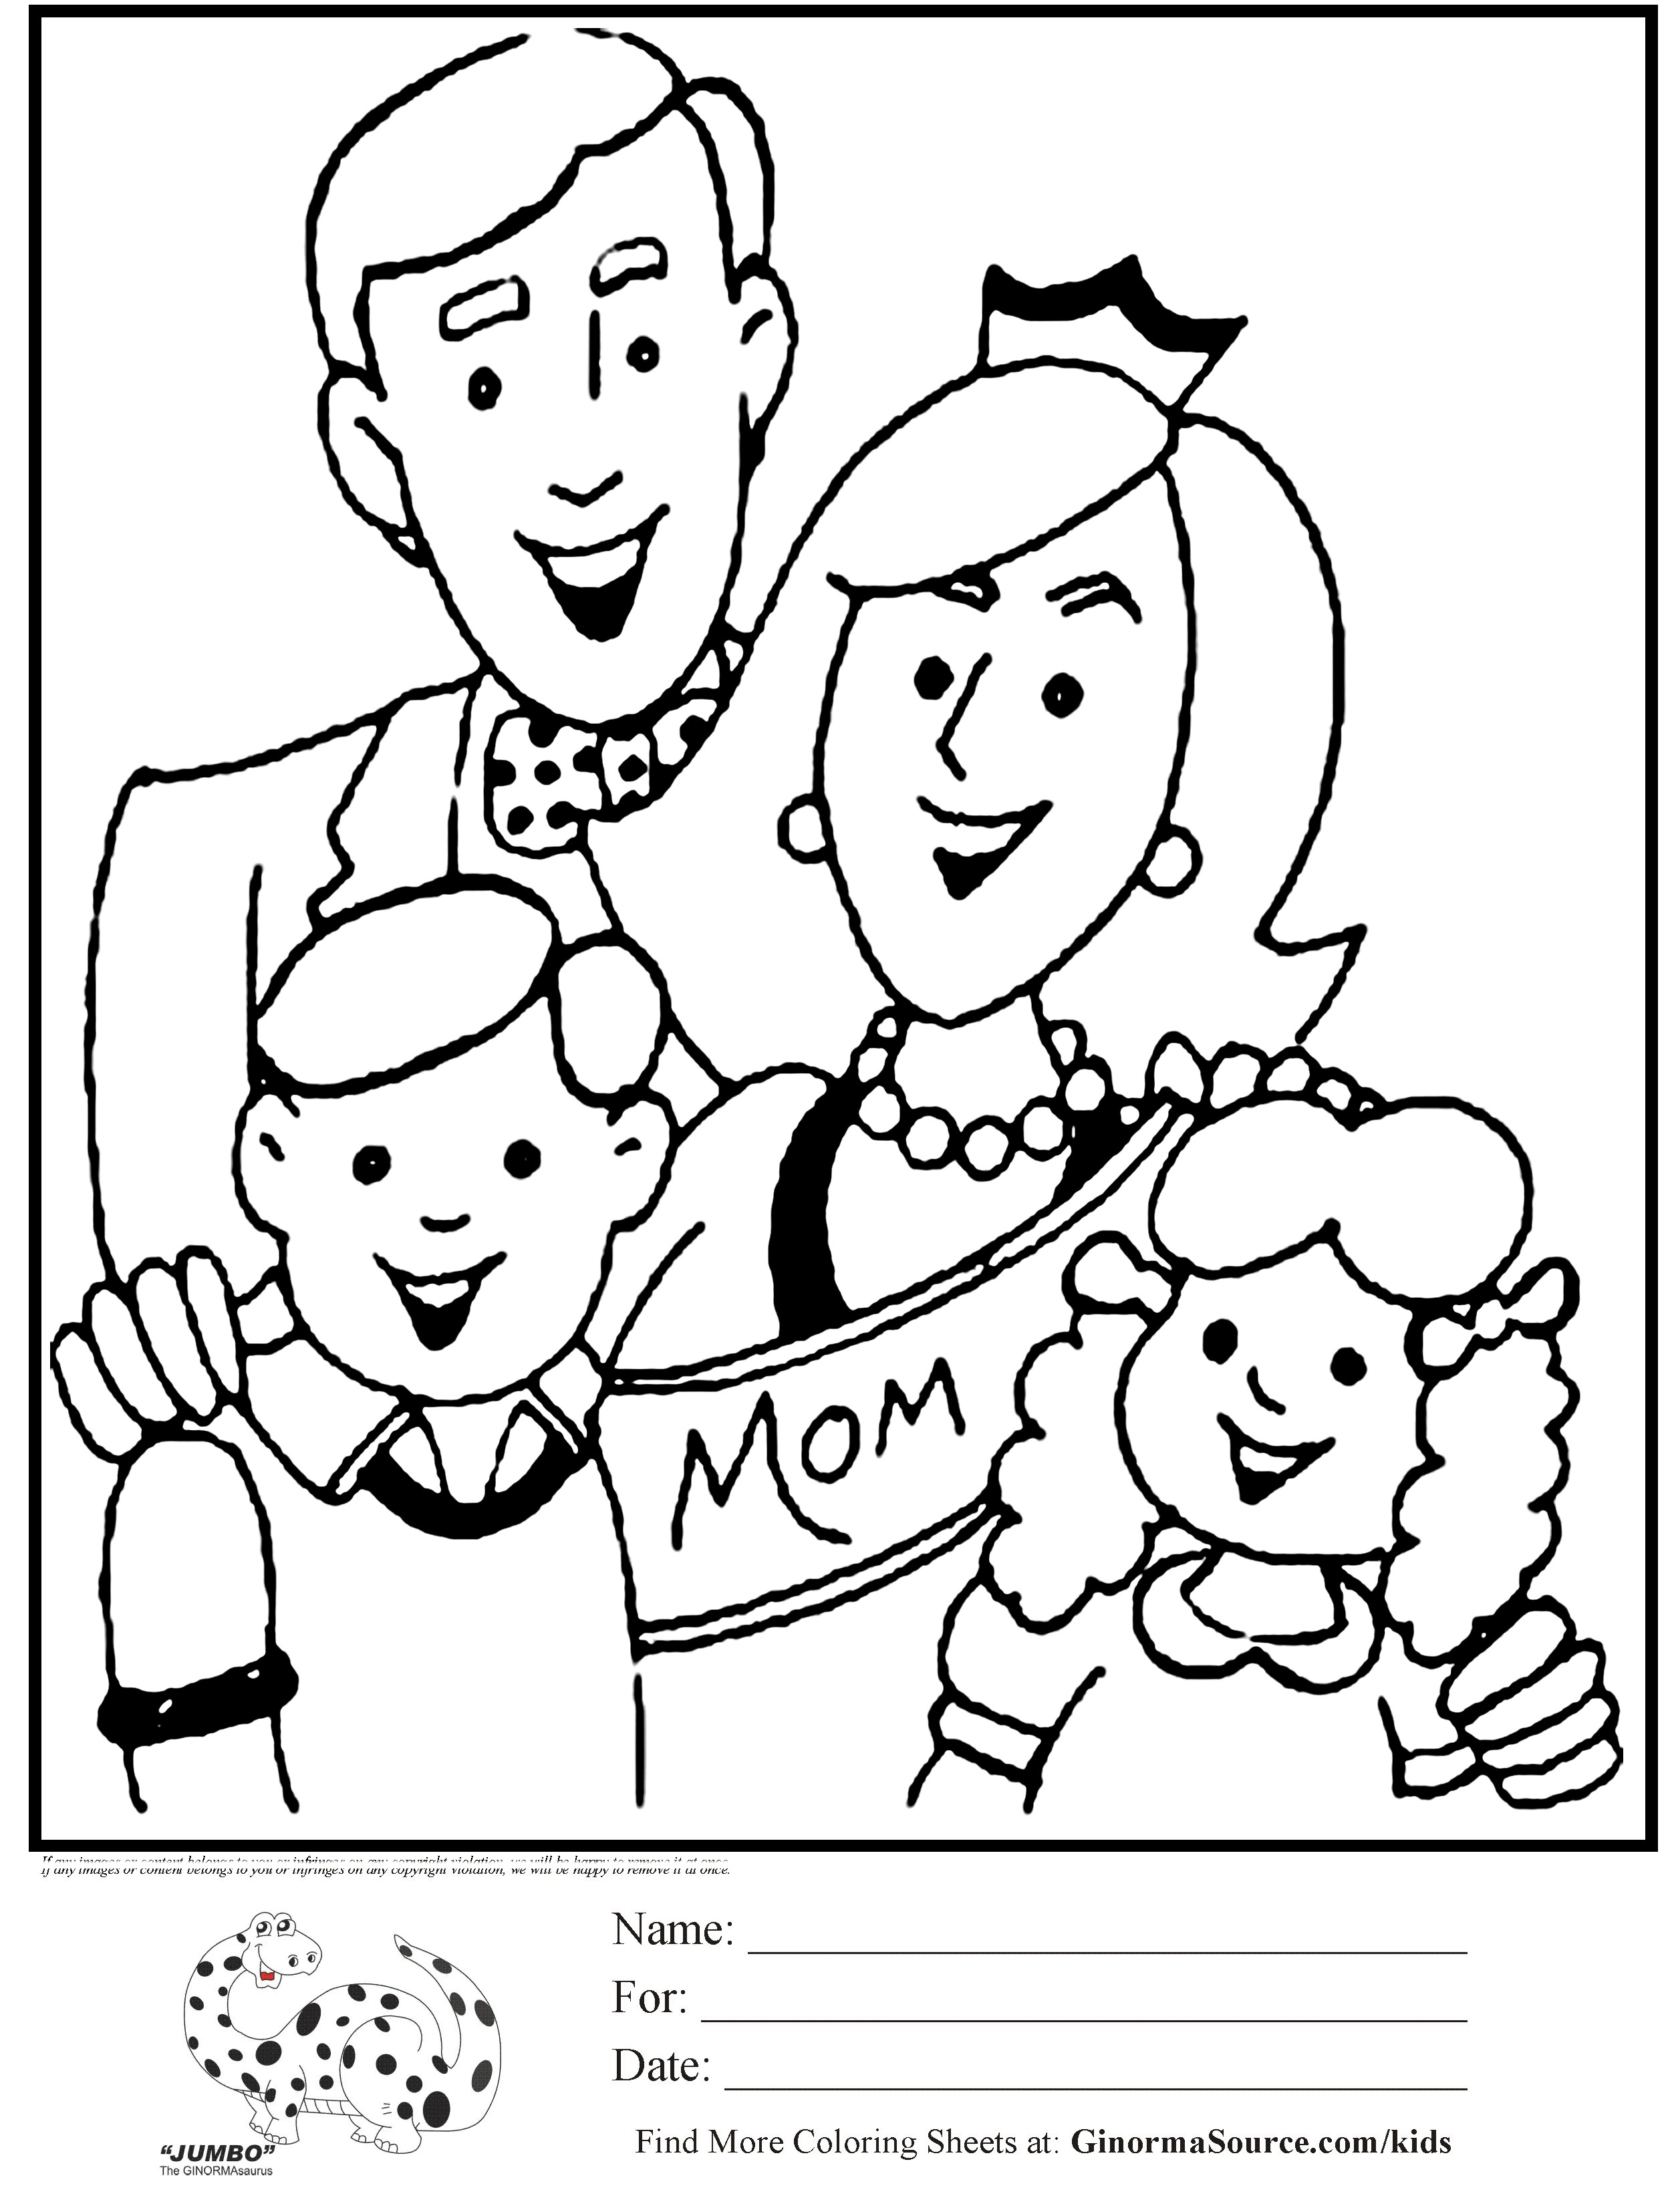 mother's day printable coloring pages - coloring pictures of family